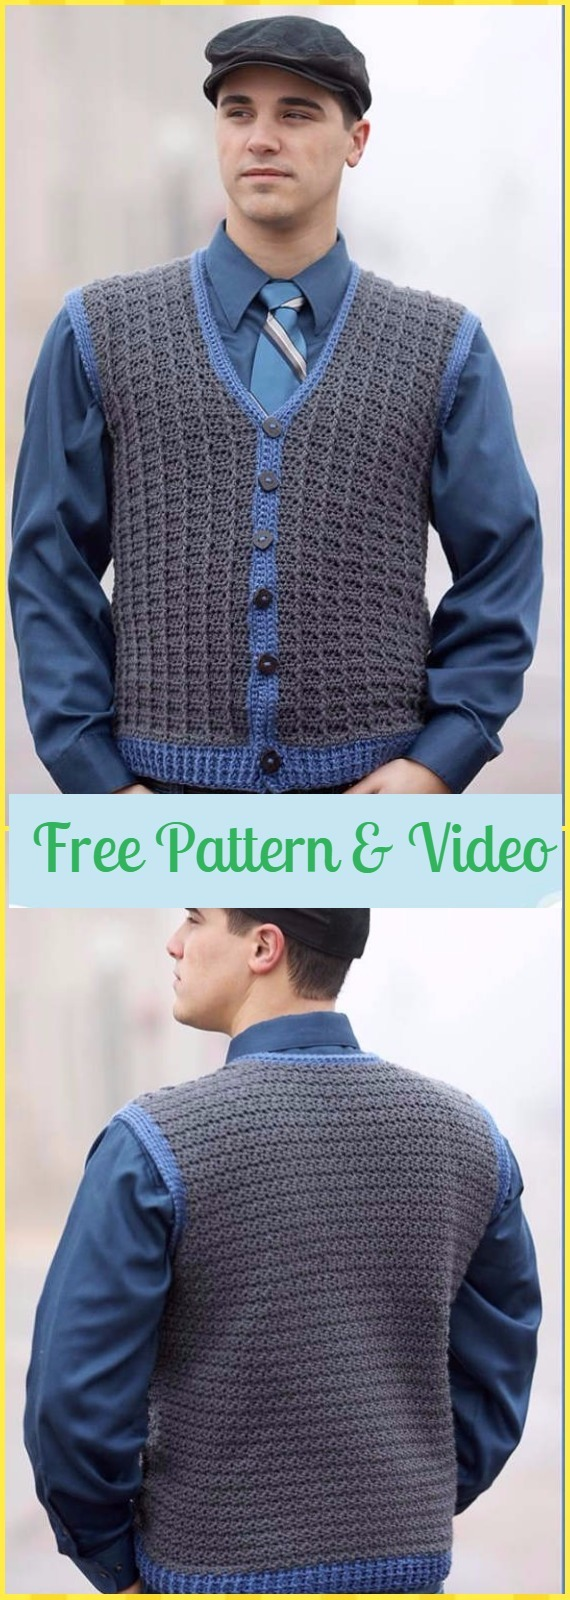 Crochet Sharp Dressed Man Vest Free Pattern & Video - Crochet Men Sweater Free Patterns